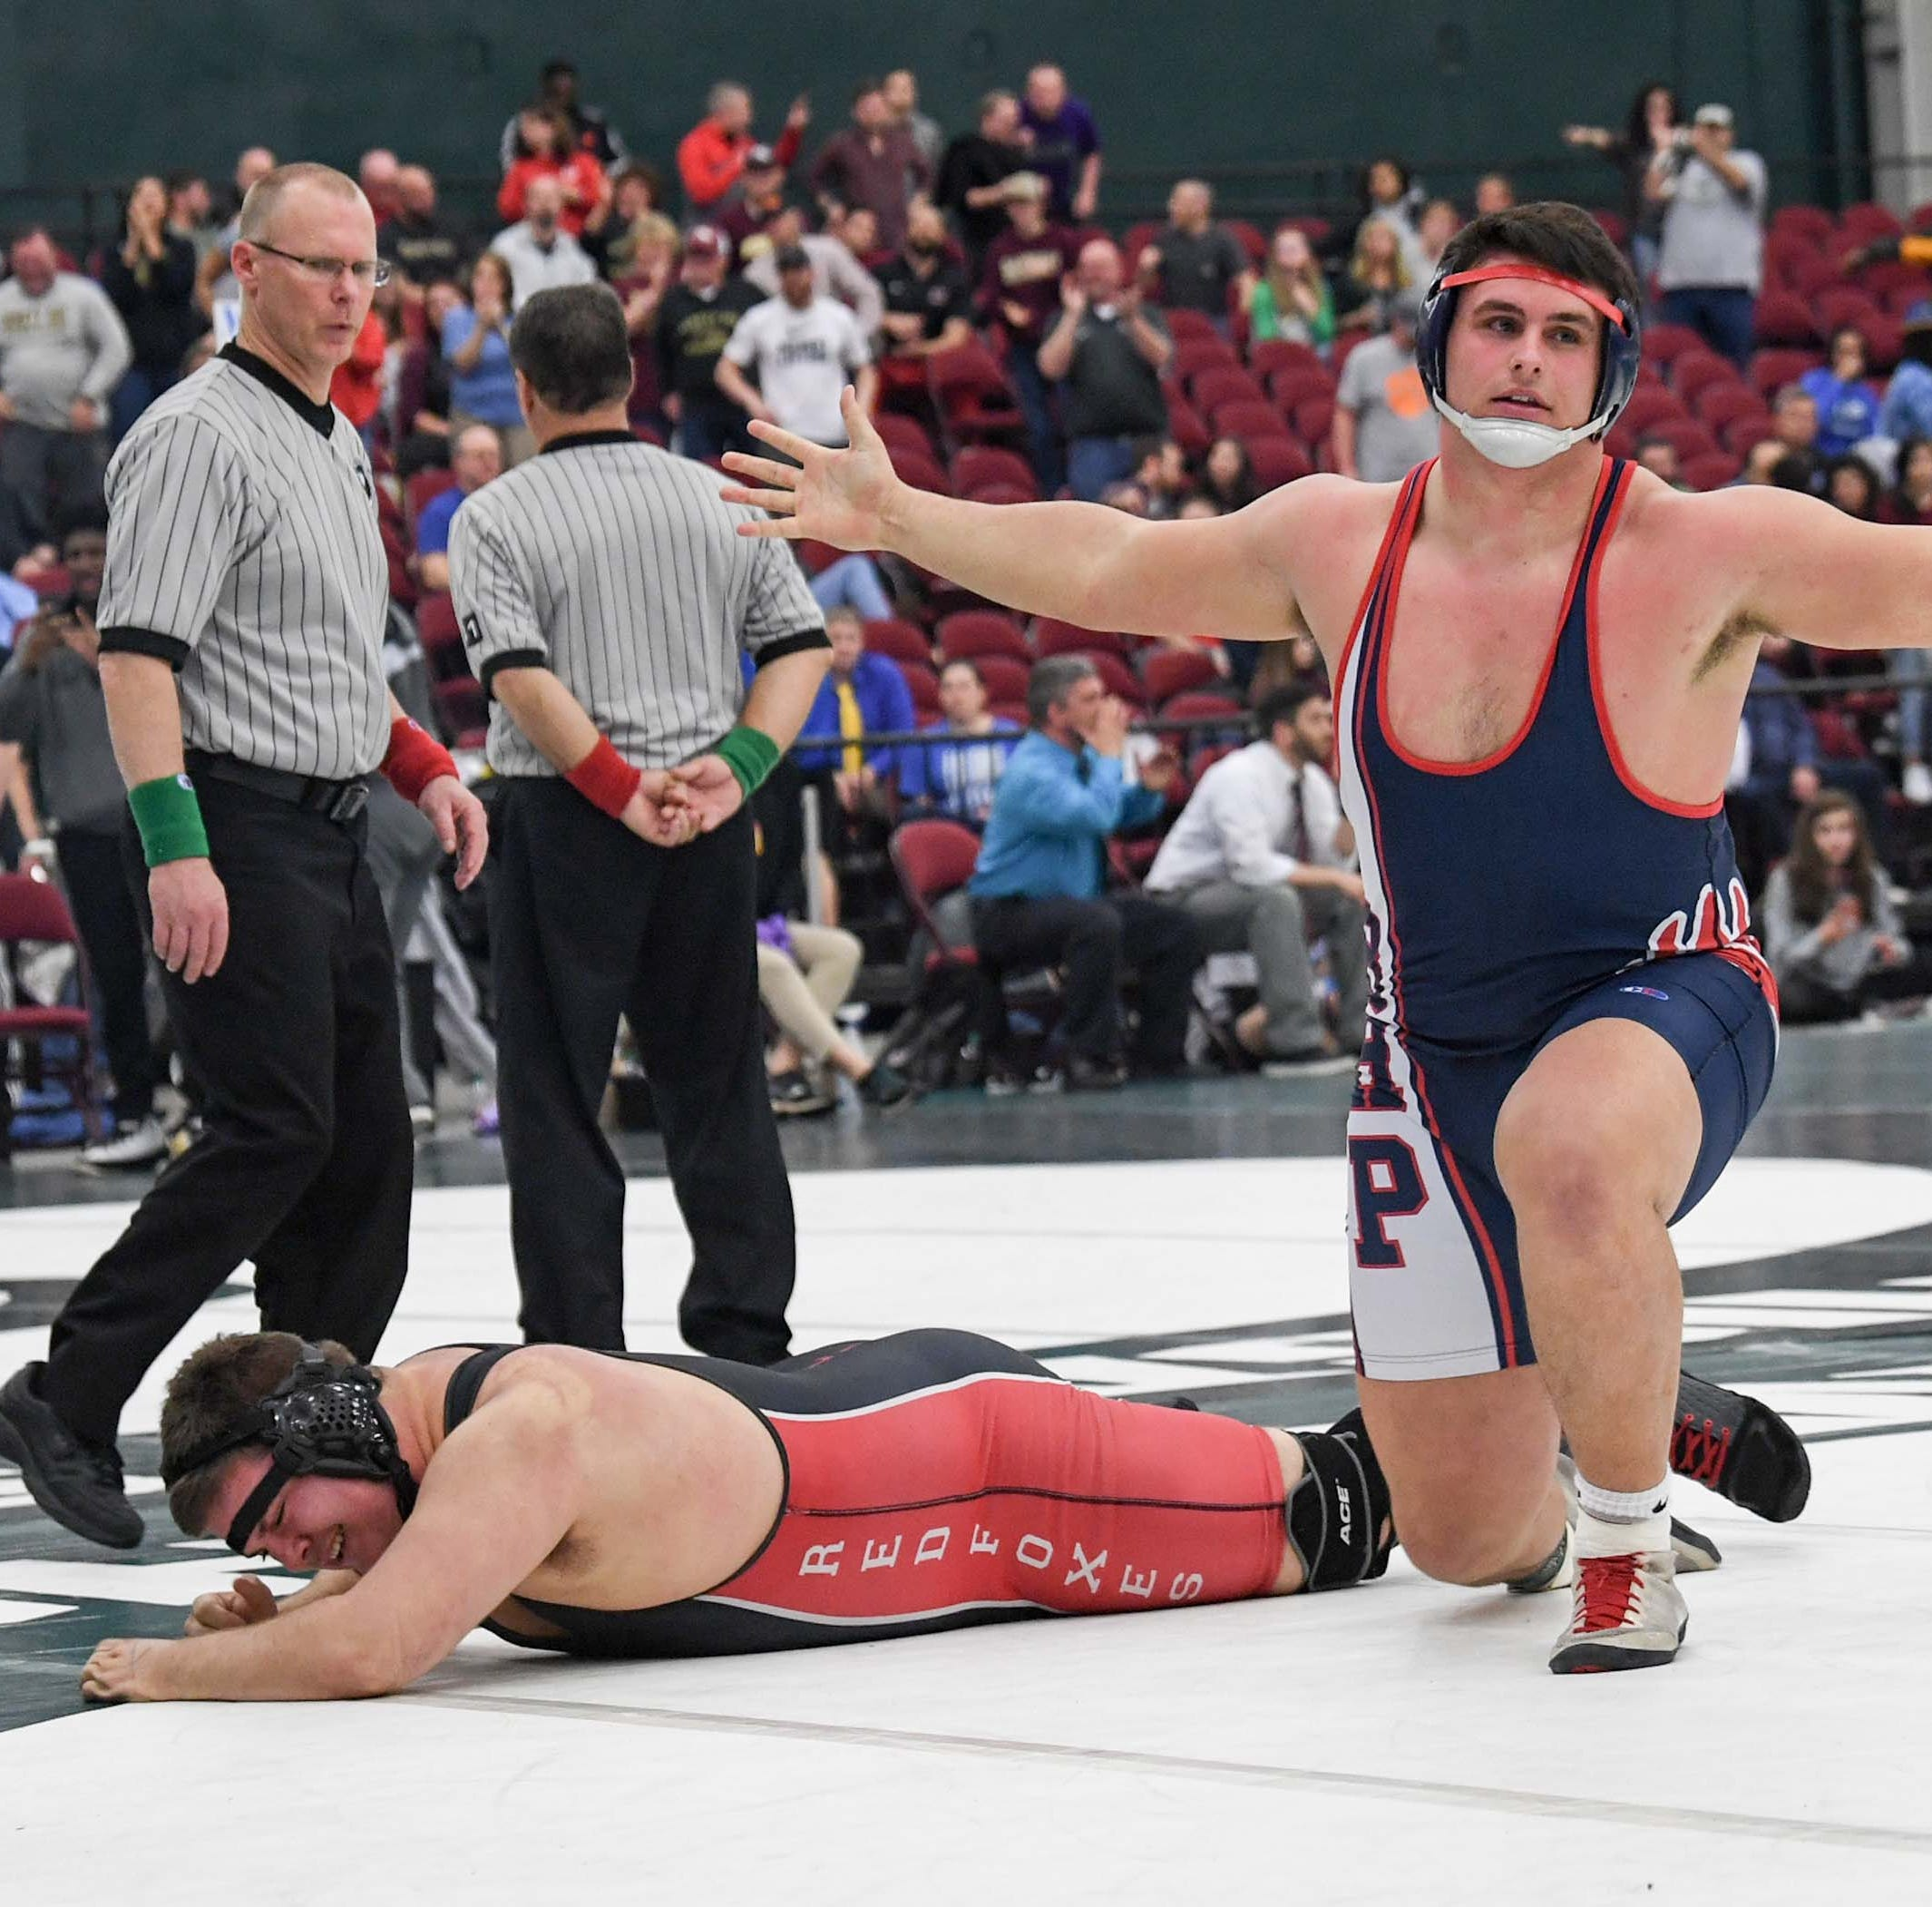 From early falls to a final pin: BHP's Avery Reece earns state wrestling title